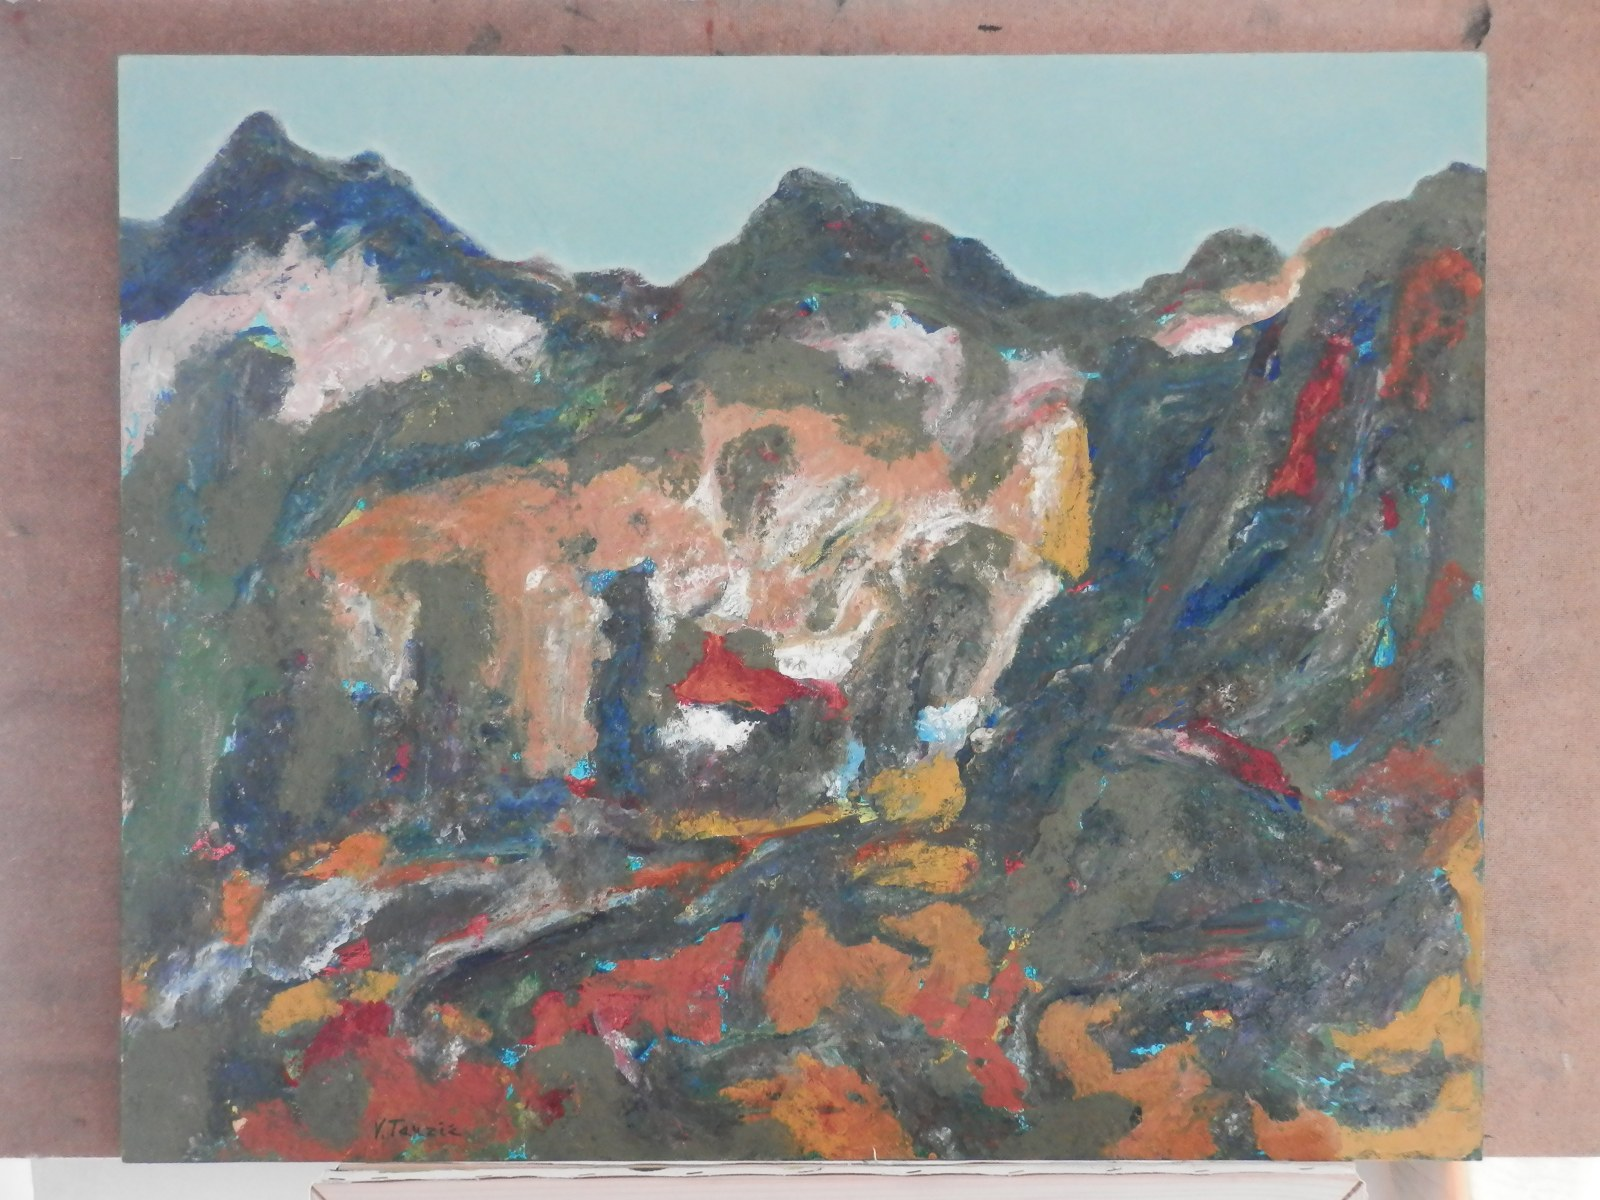 Br. 64 - Ulej na medijapanu - 65x80 <br> 	No. 64 - Oil on medijapanu - 65x80